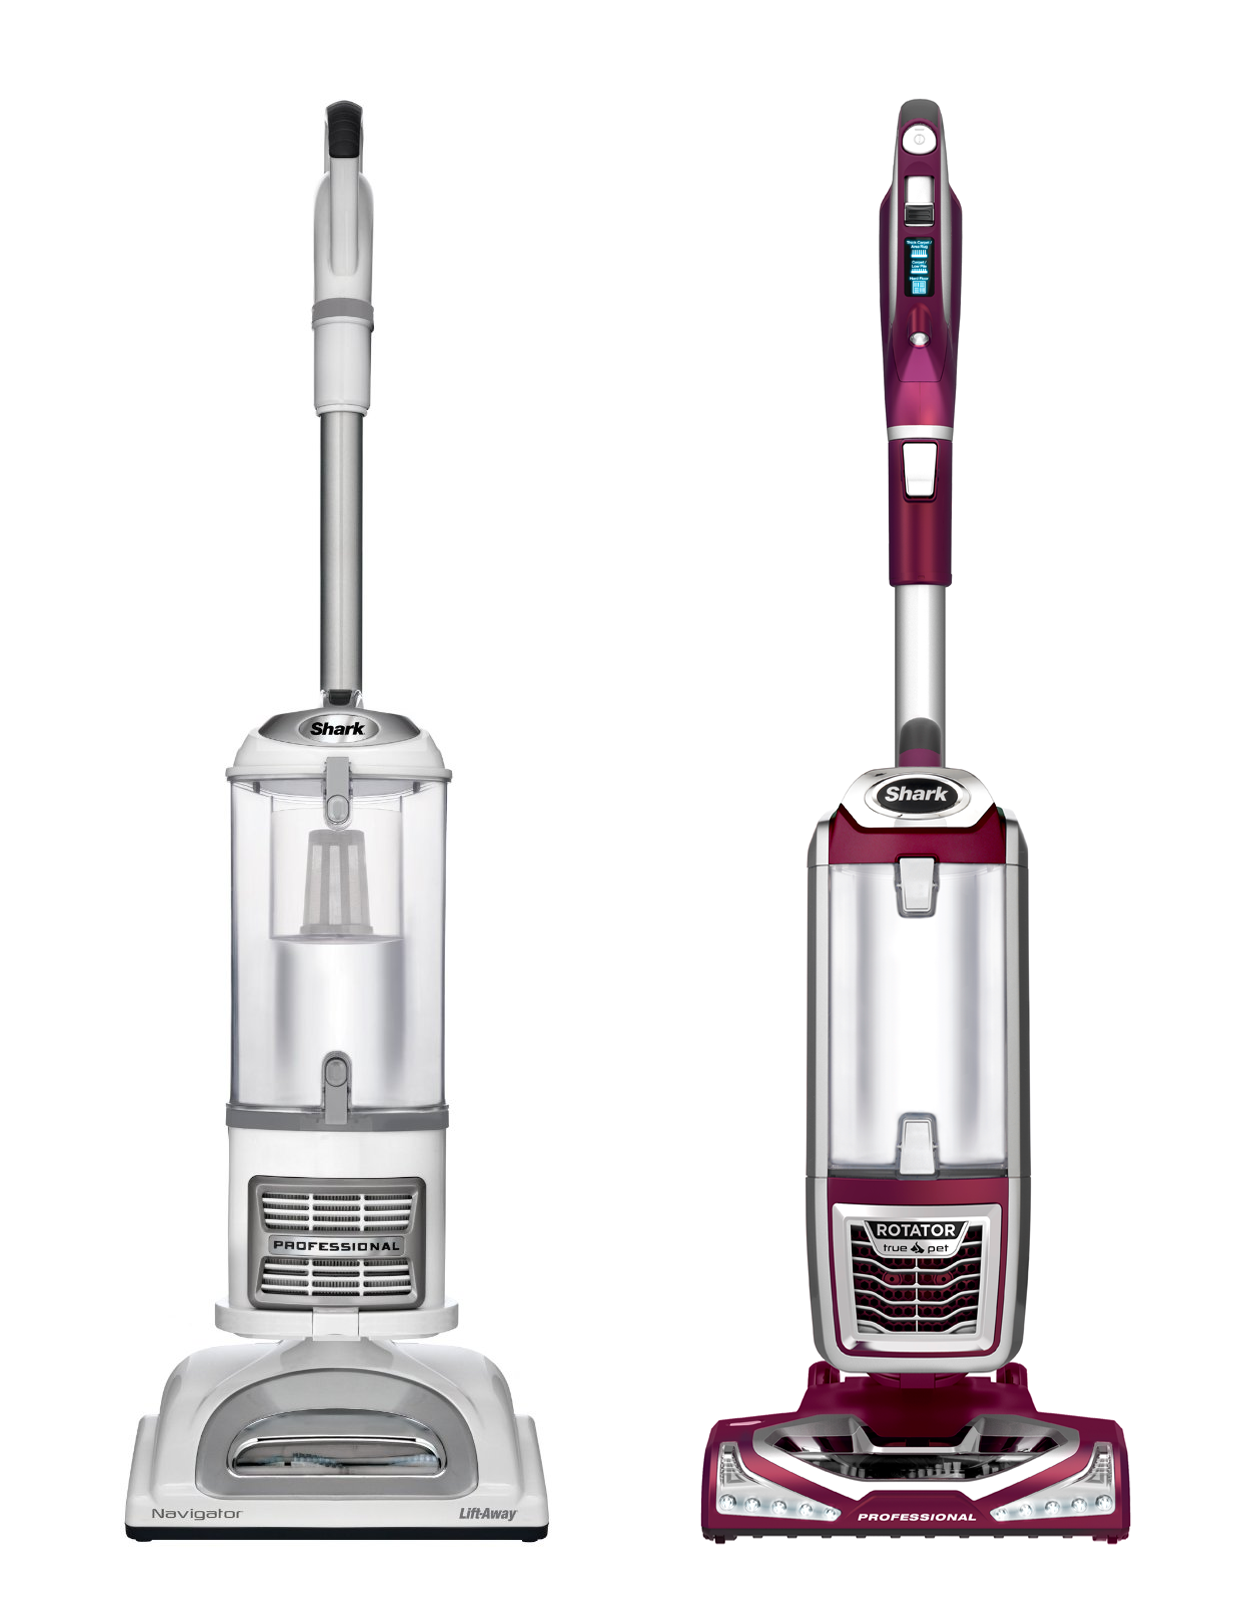 Shark Navigator Vs Rotator Who Wins The Vacuum Lover S Favor